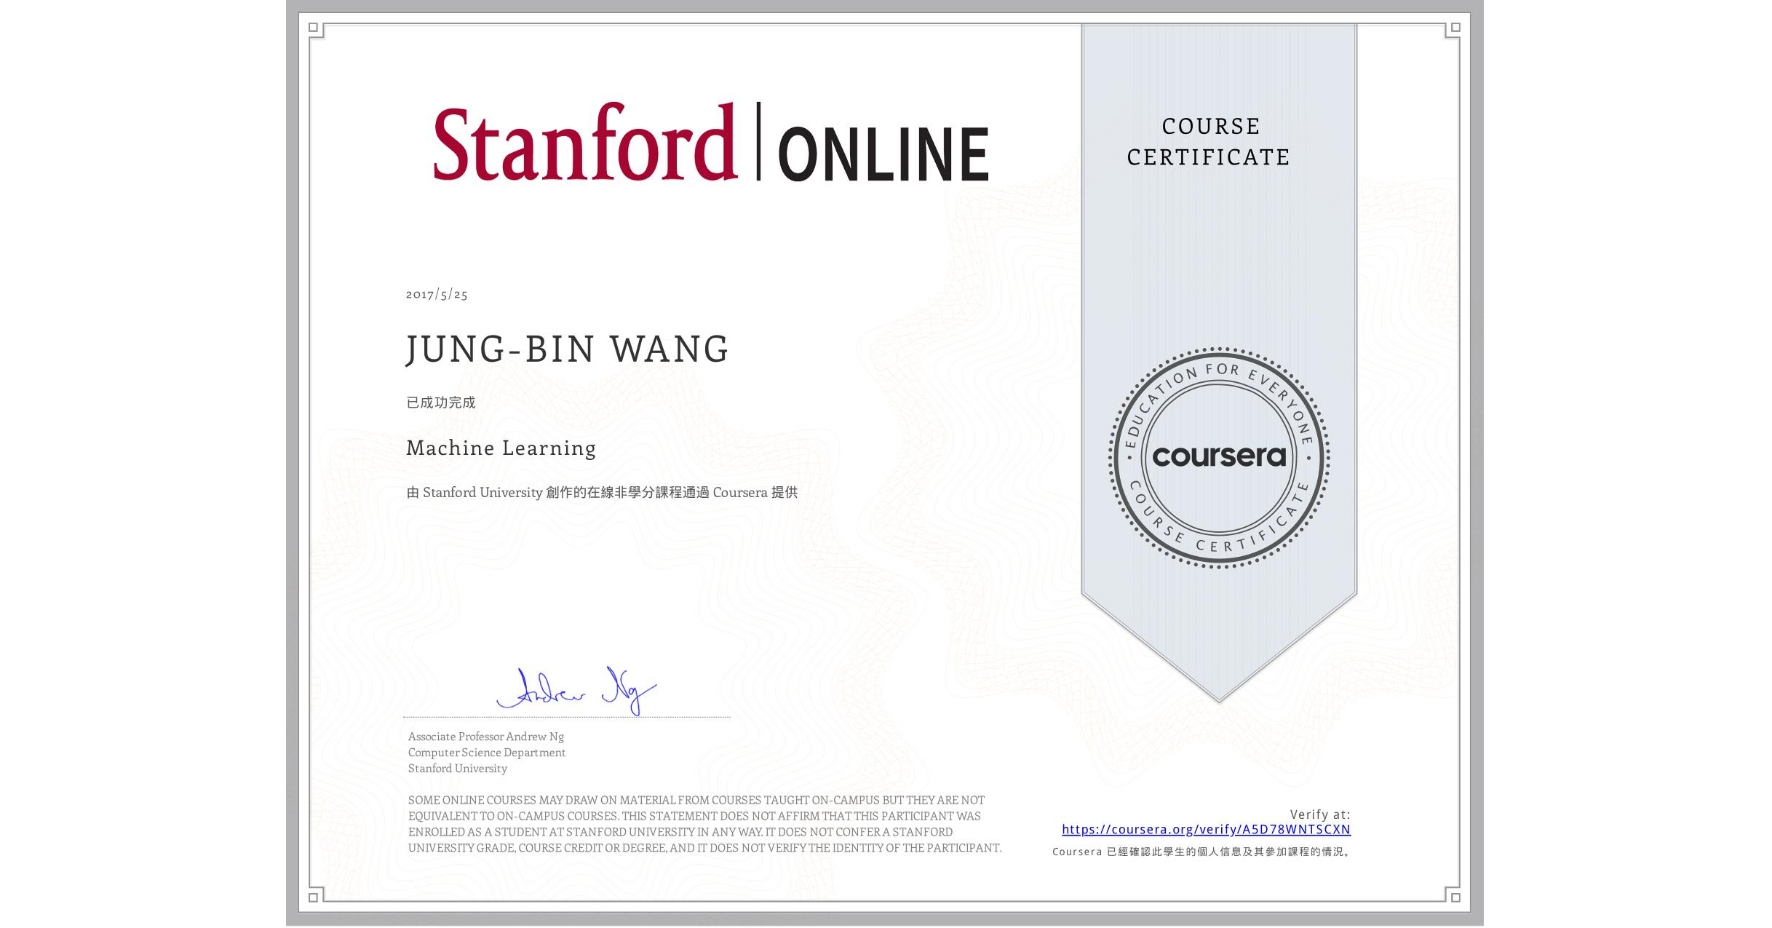 View certificate for JUNG-BIN WANG, Machine Learning, an online non-credit course authorized by Stanford University and offered through Coursera